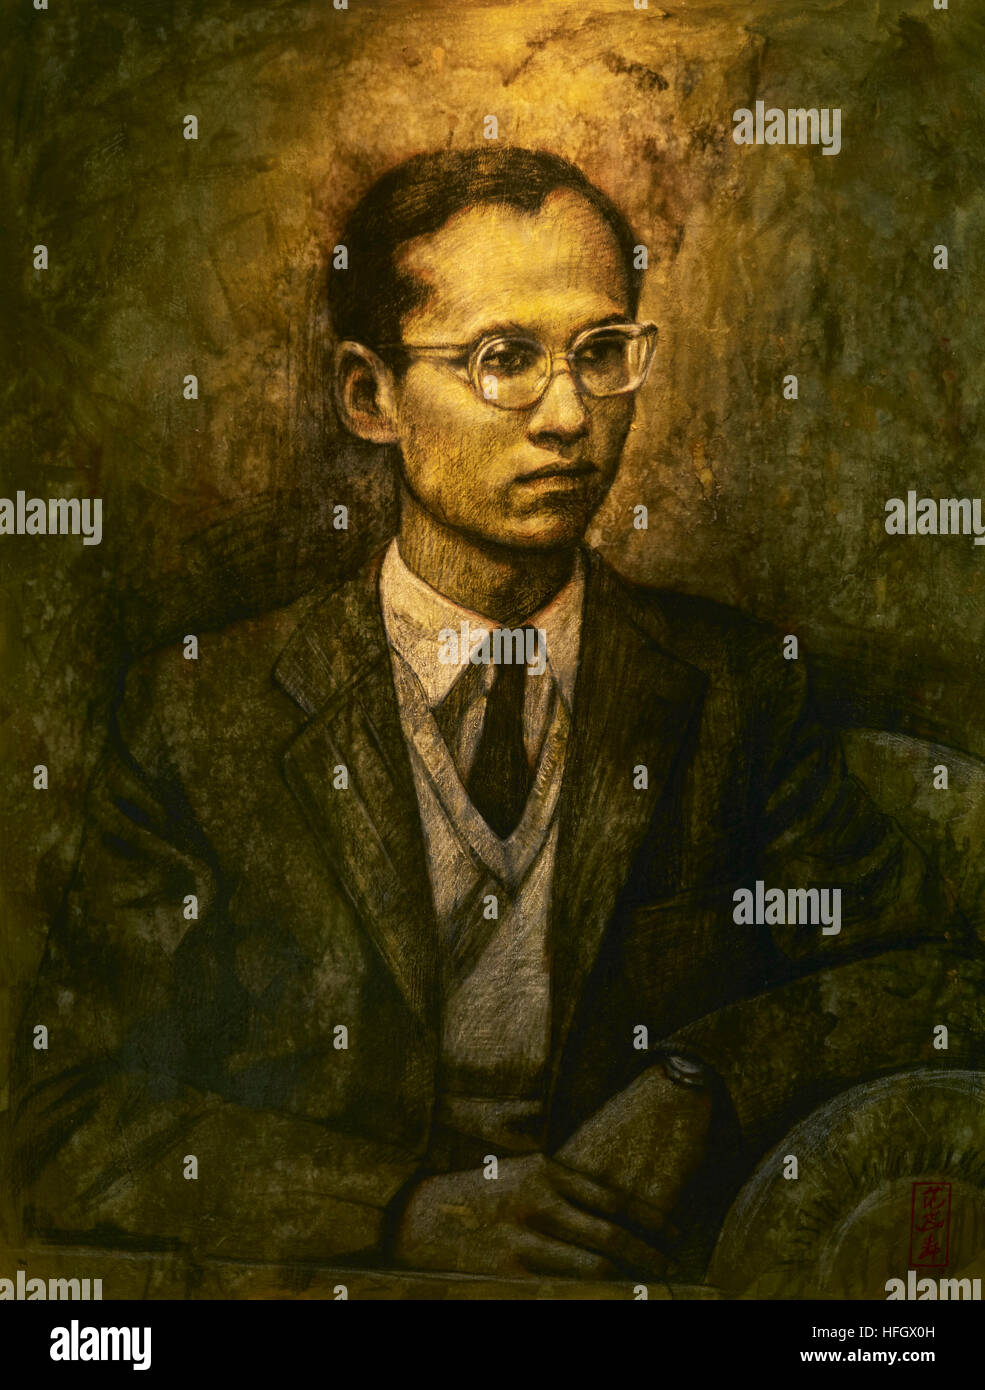 Painting of the late revered Thailand King Bhumibol Adulyadej Rama 1X. Died 13th October 2016 - Stock Image